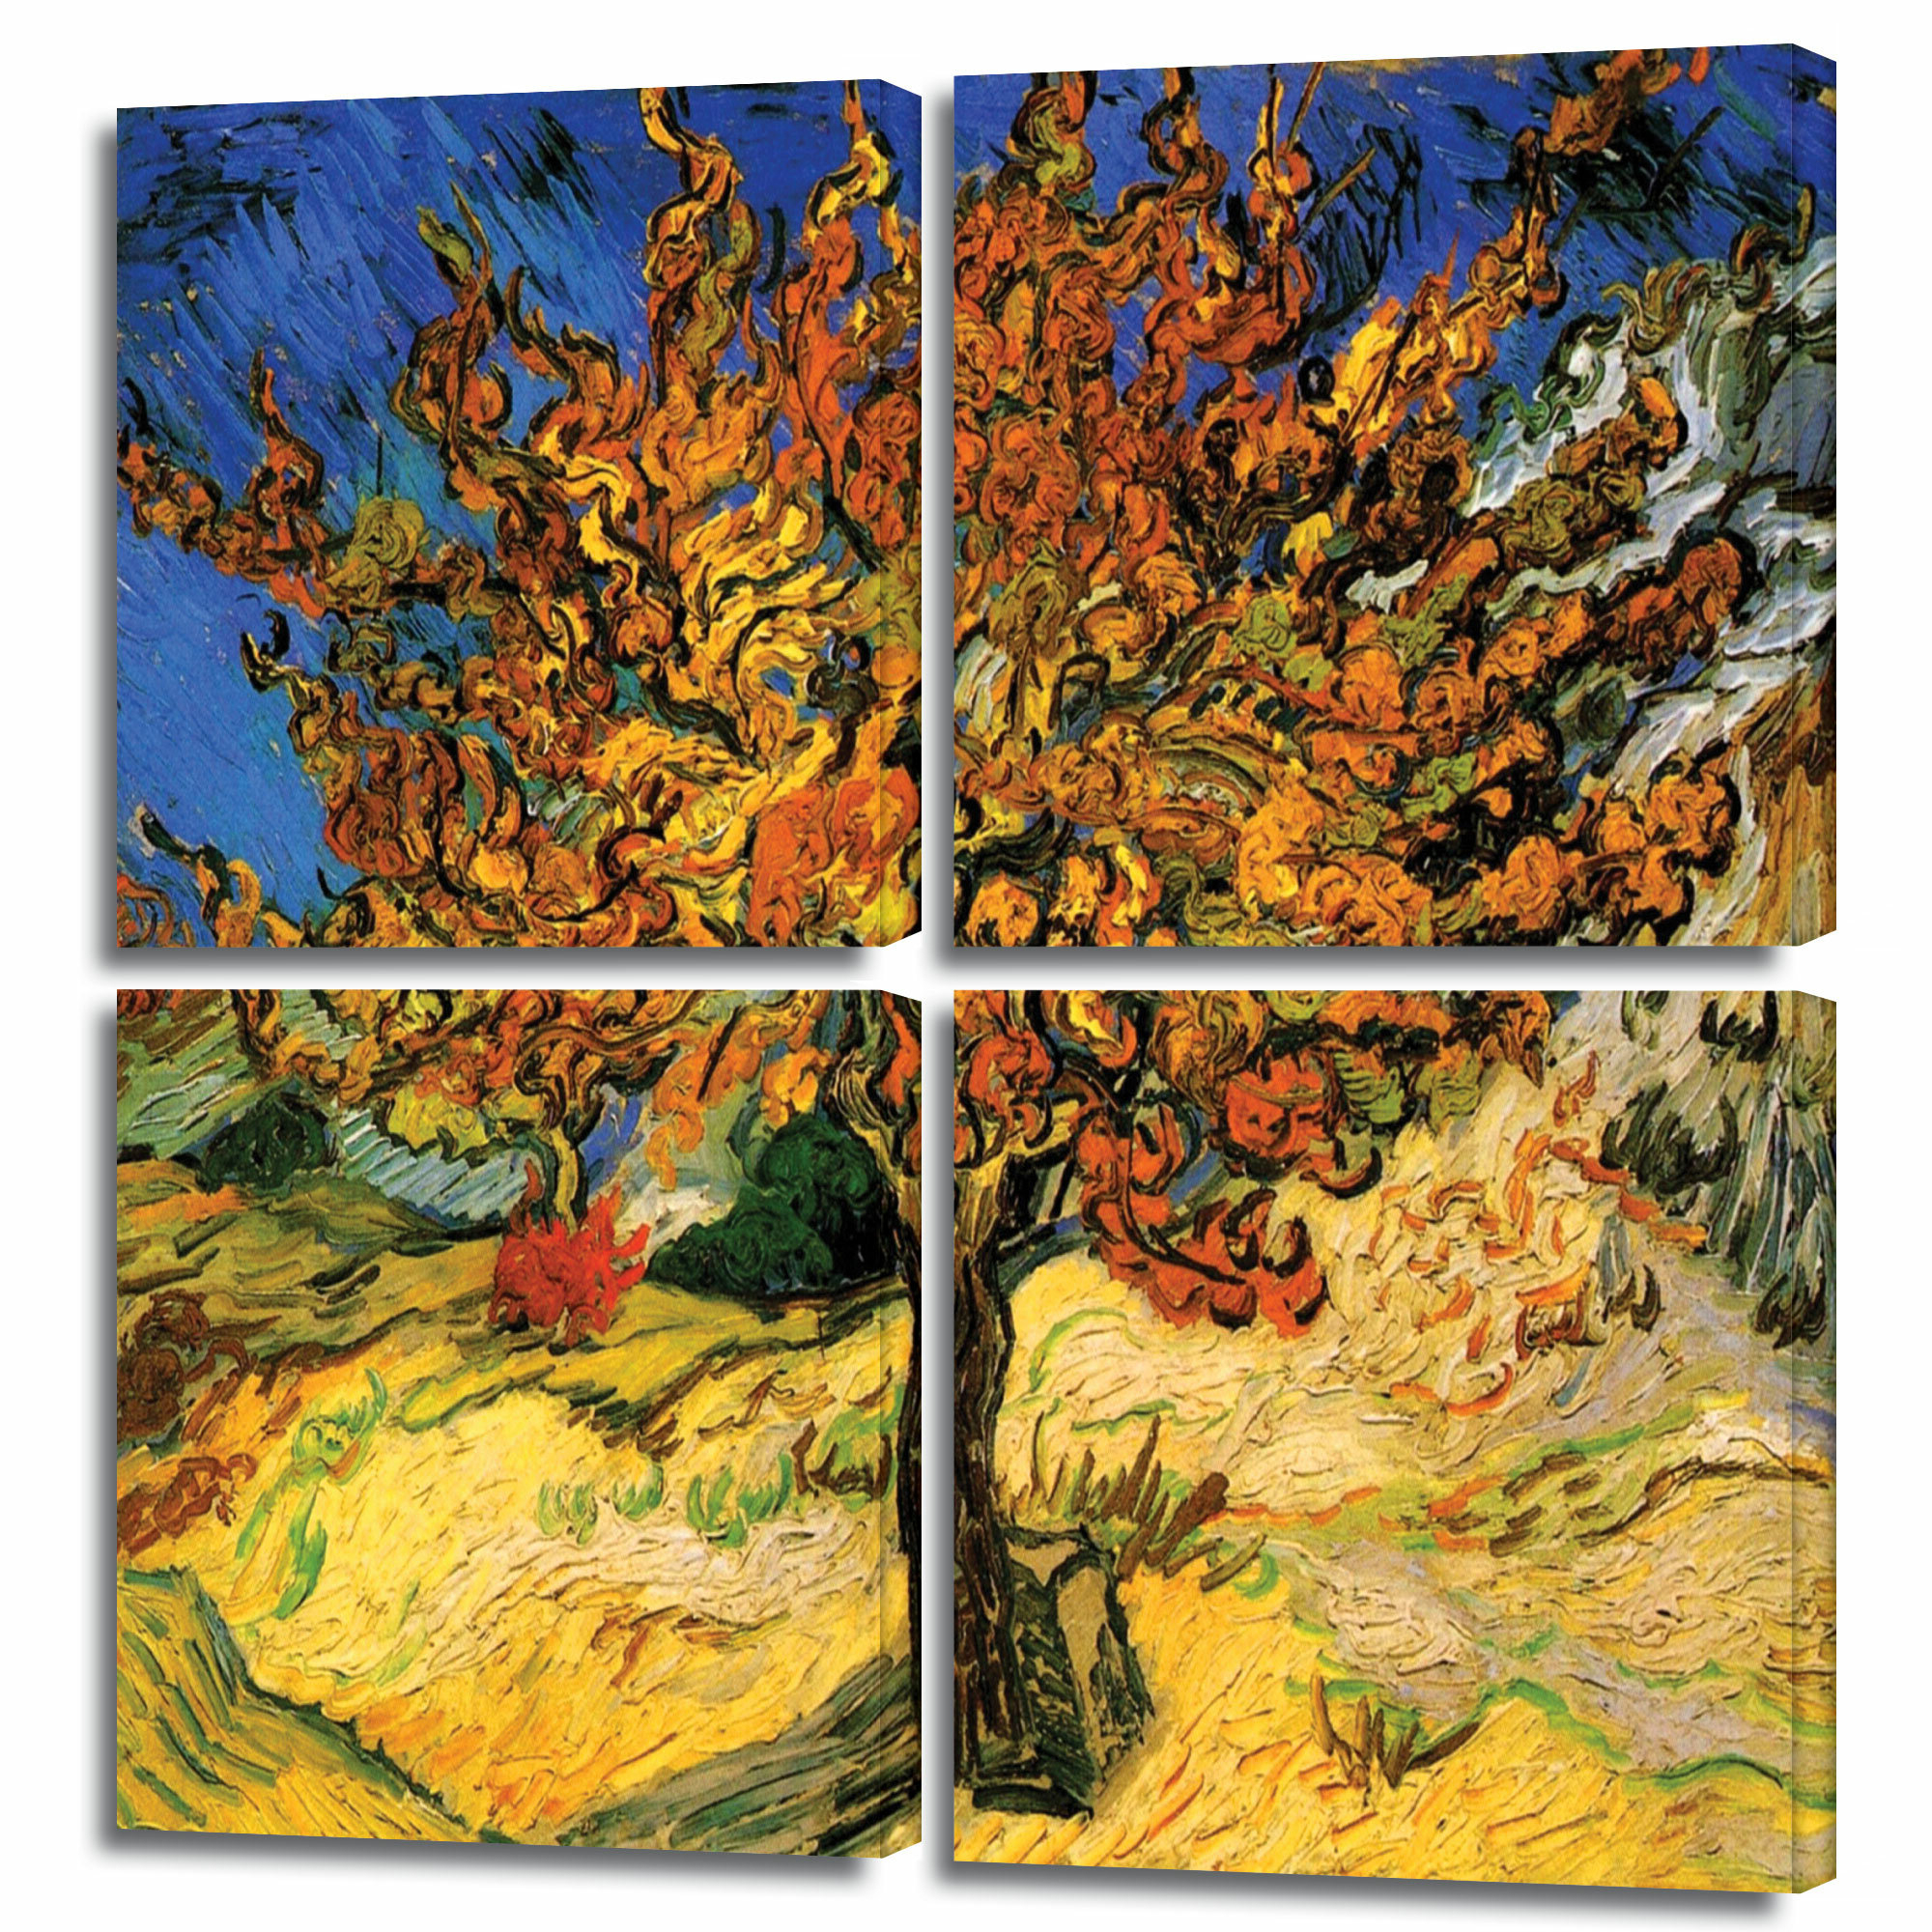 Most Recently Released 'mulberry Tree'vincent Van Gogh 4 Piece Painting Print On Wrapped Canvas Set Pertaining To Blended Fabric The Mulberry Tree – Van Gogh Wall Hangings (View 10 of 20)